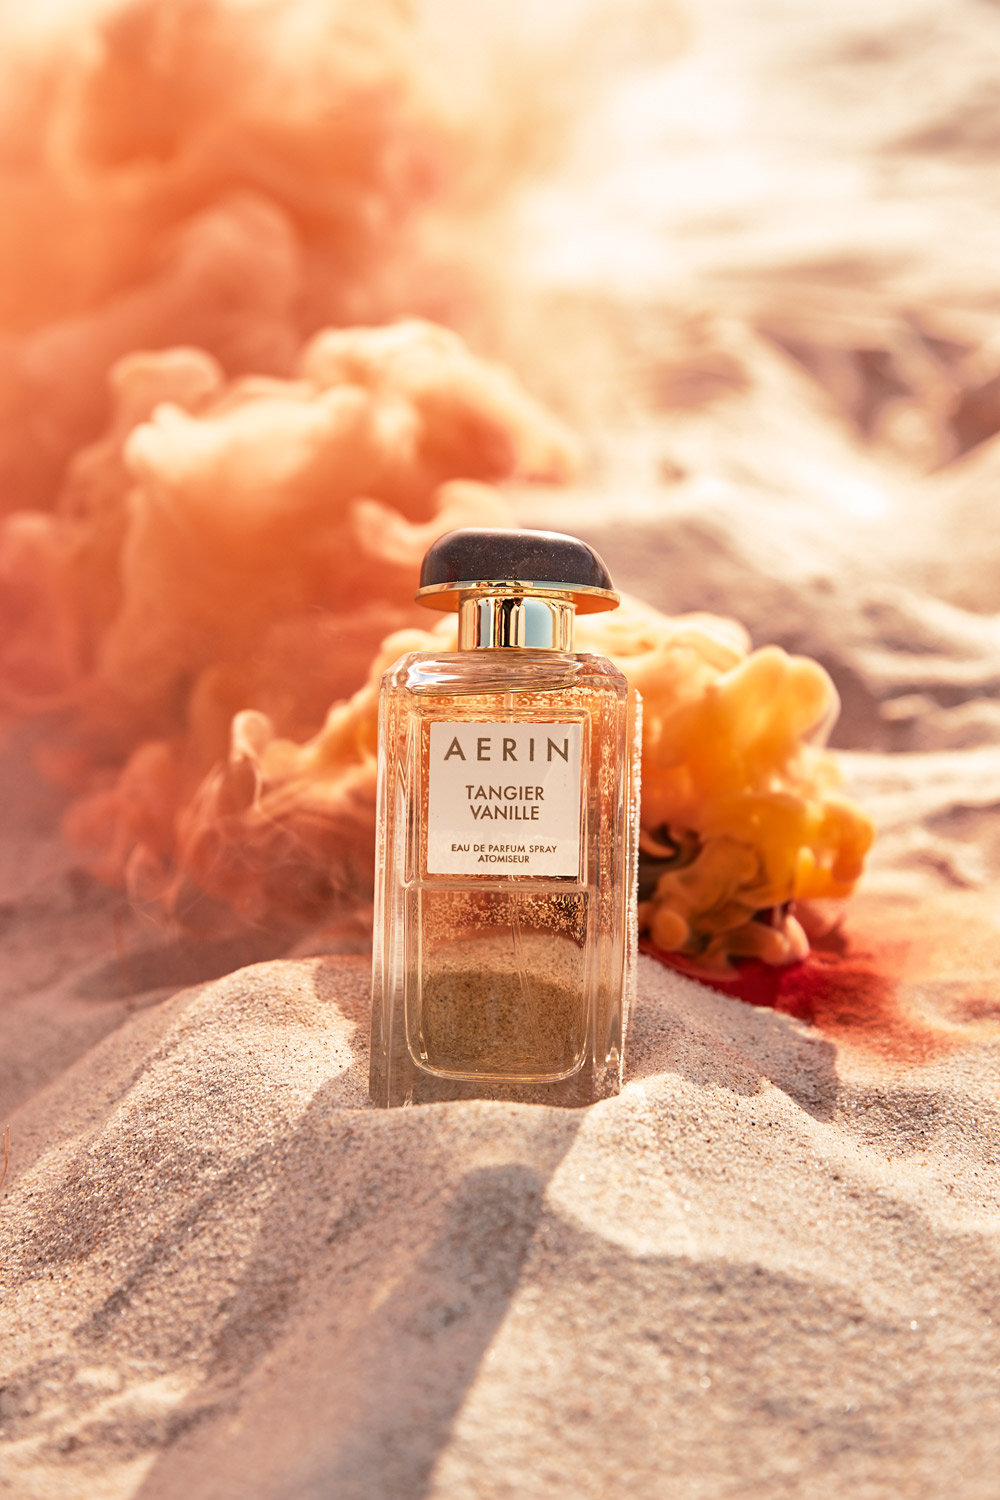 aerin-tangier-vanille-fragrance-perfume-oracle-fox-8